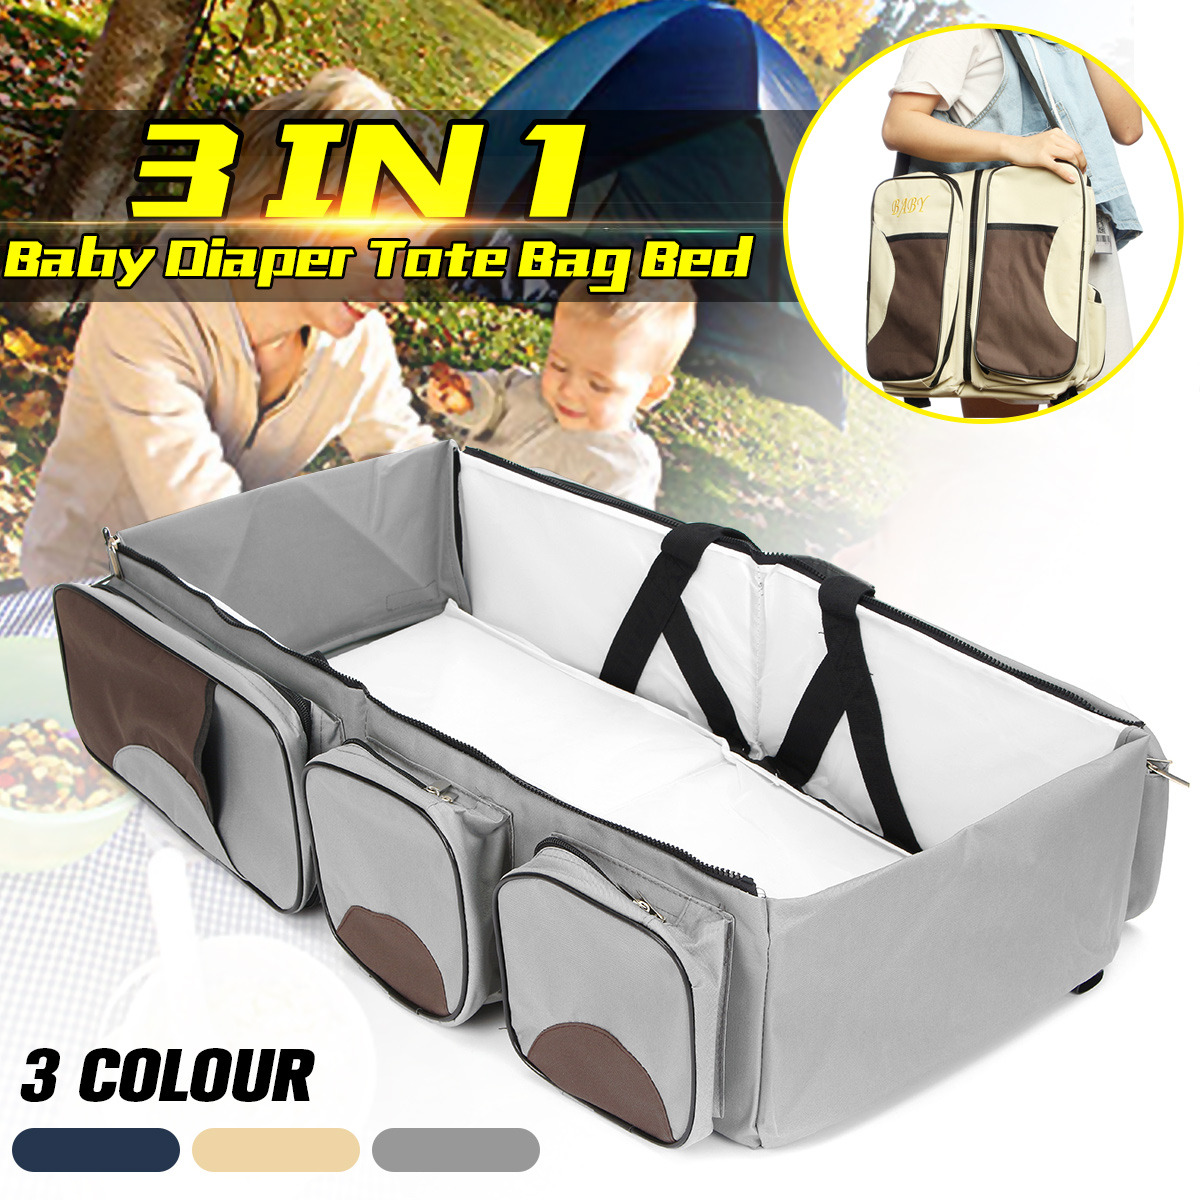 Fashion Diapers Bag Folding Mummy Travel Baby Bed Kids Bottle Cloth Case Large Space Nappy Bag 3 in 1 Portable Nappy Nursing Bag